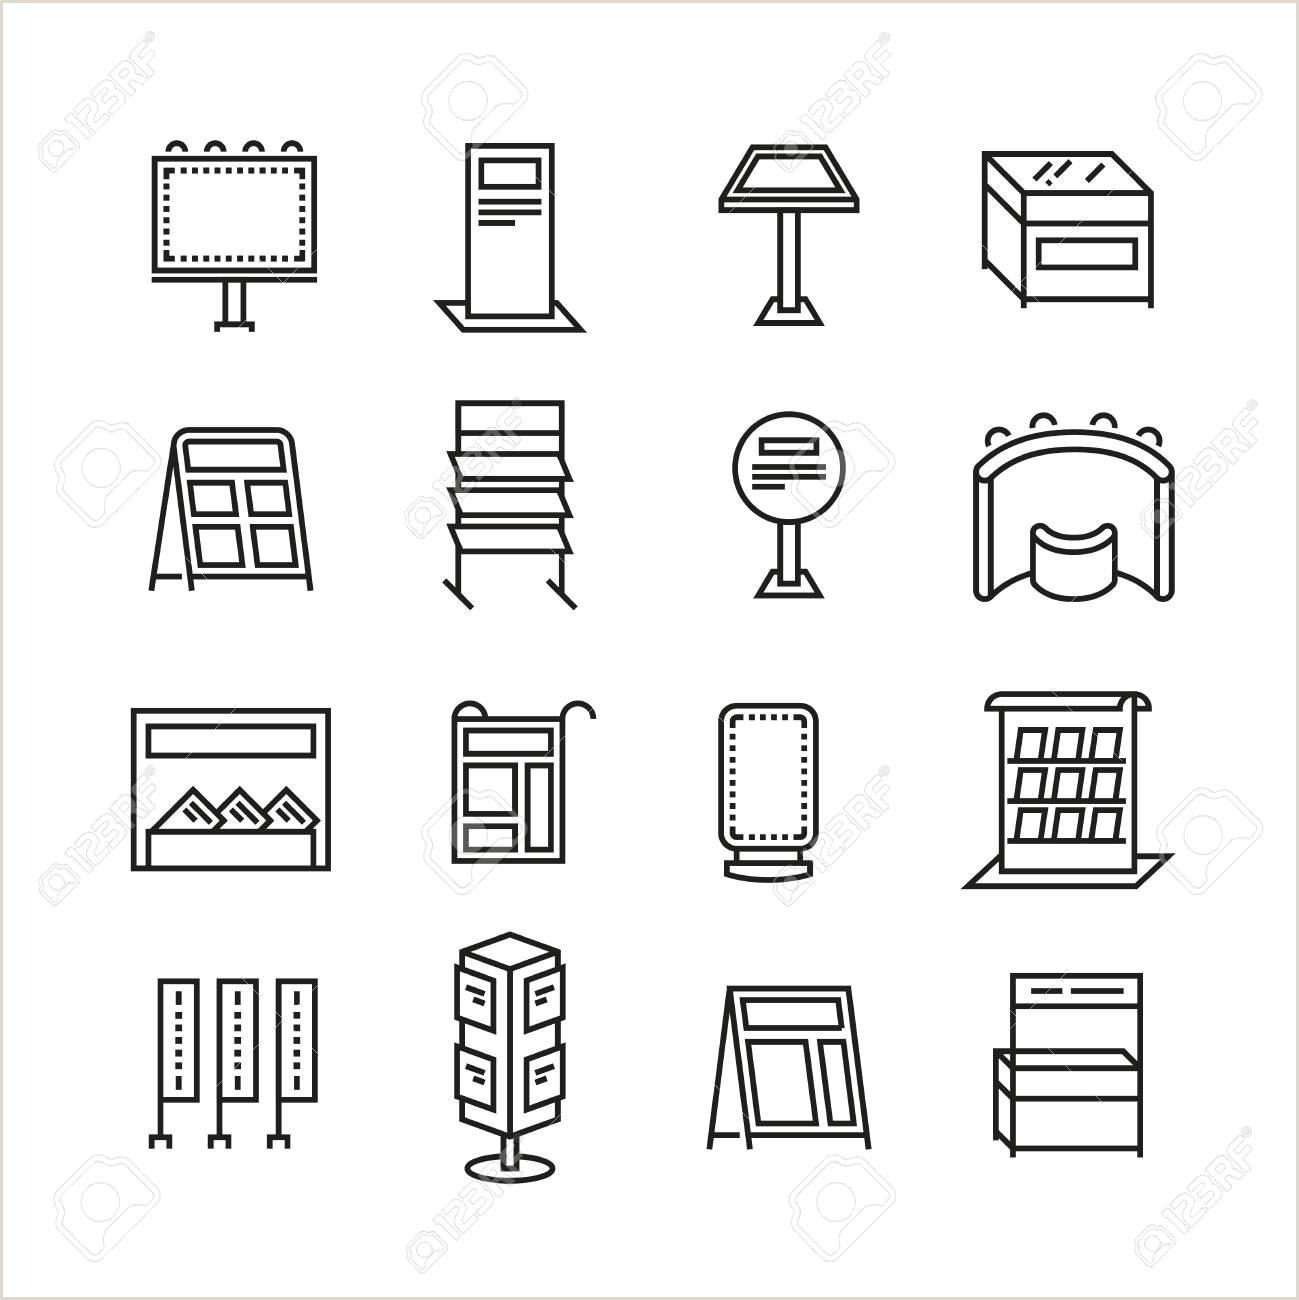 Horizontal Banner Stands For Trade Shows Exhibition Banner Stands Promo Display Line Vector Icons Set